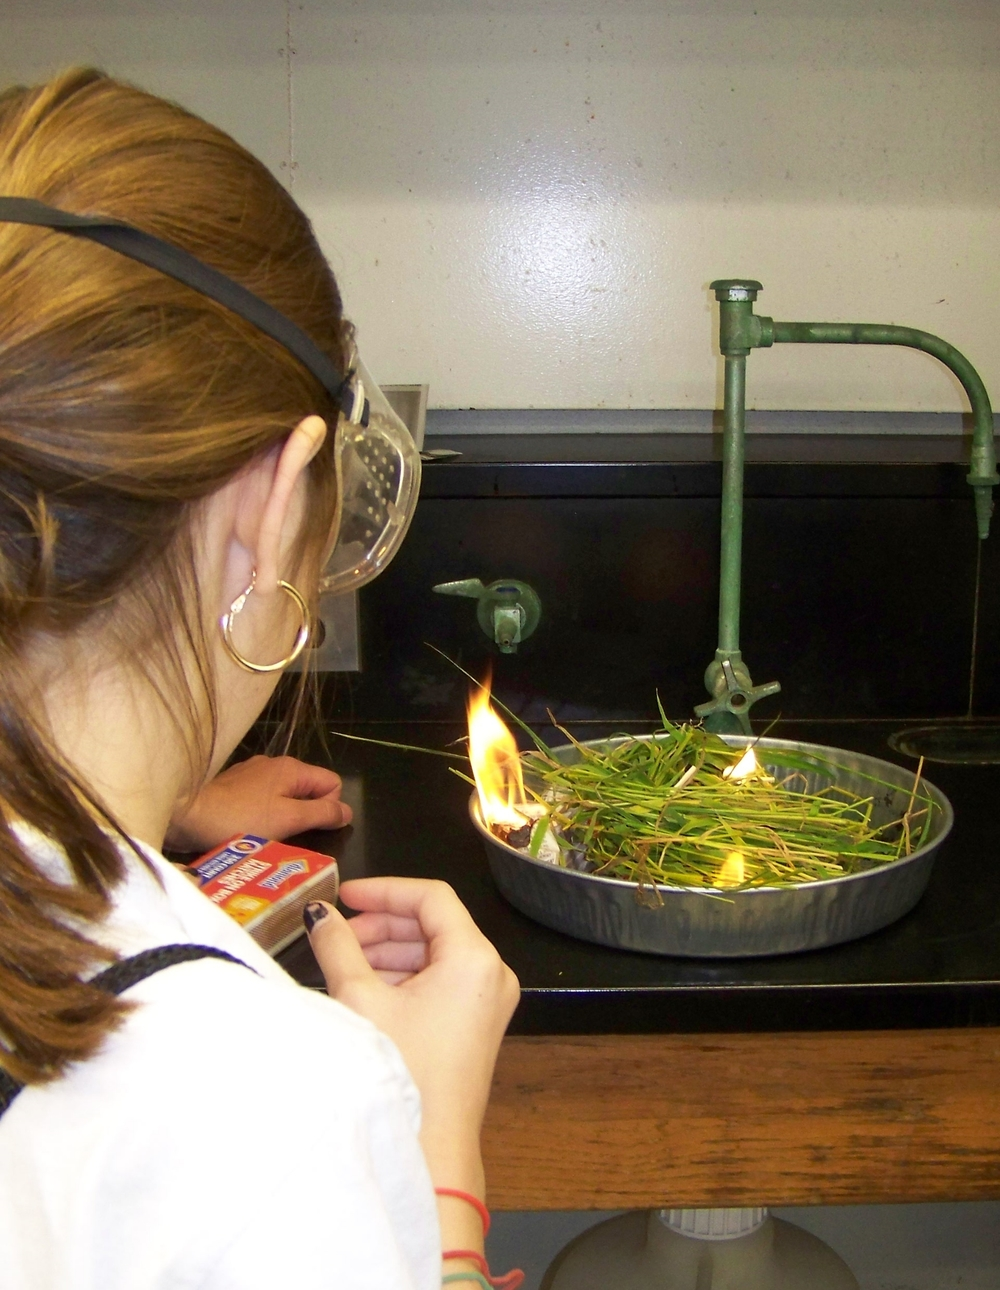 Student observes green fuel burning in a lab experiment.